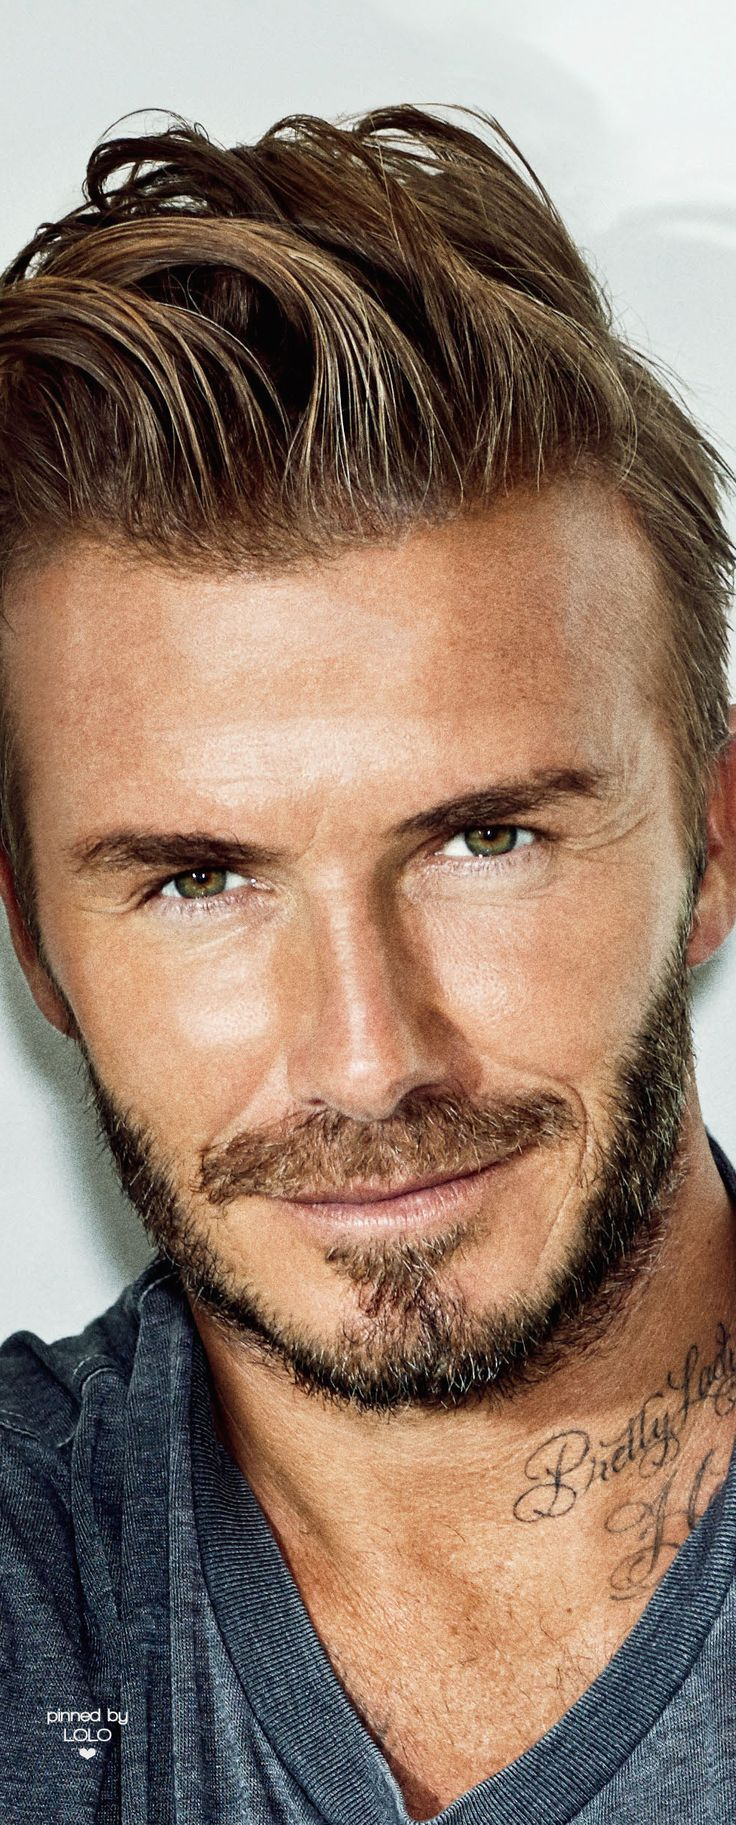 David Beckham People Sexiest Man Alive By Marc Hom Lolo Boyz Drop Dead Gorgeous Men 39 S